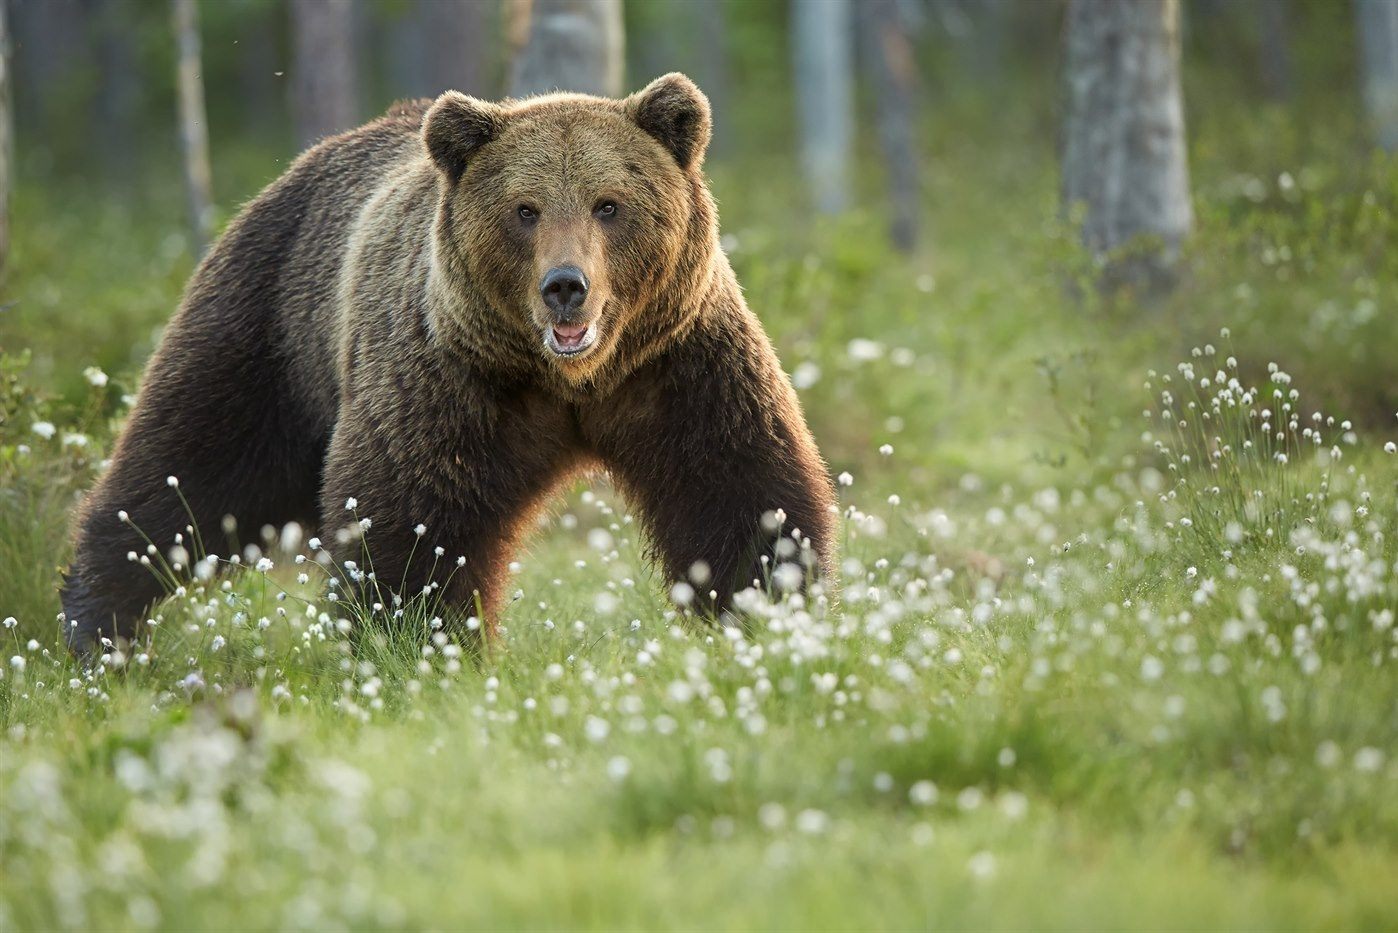 Bears, Wolves & Wildlife Adventure | Book Finland Tours